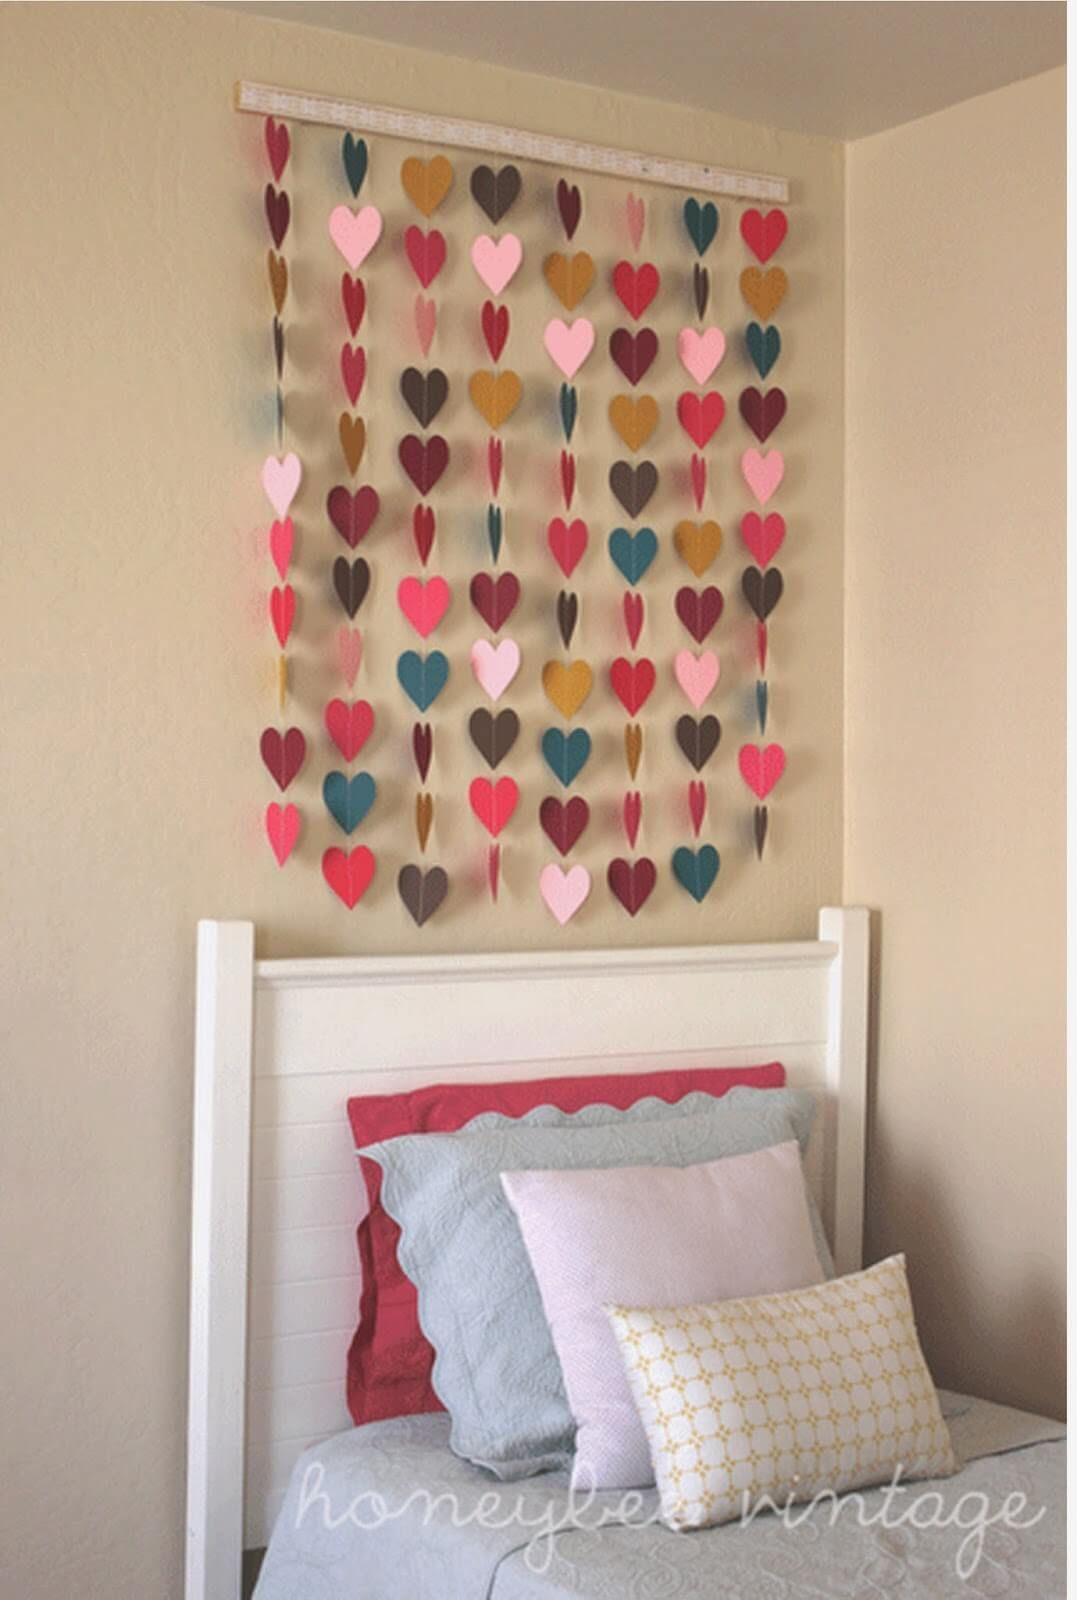 37 Dazzling DIY Wall Hanging Ideas to